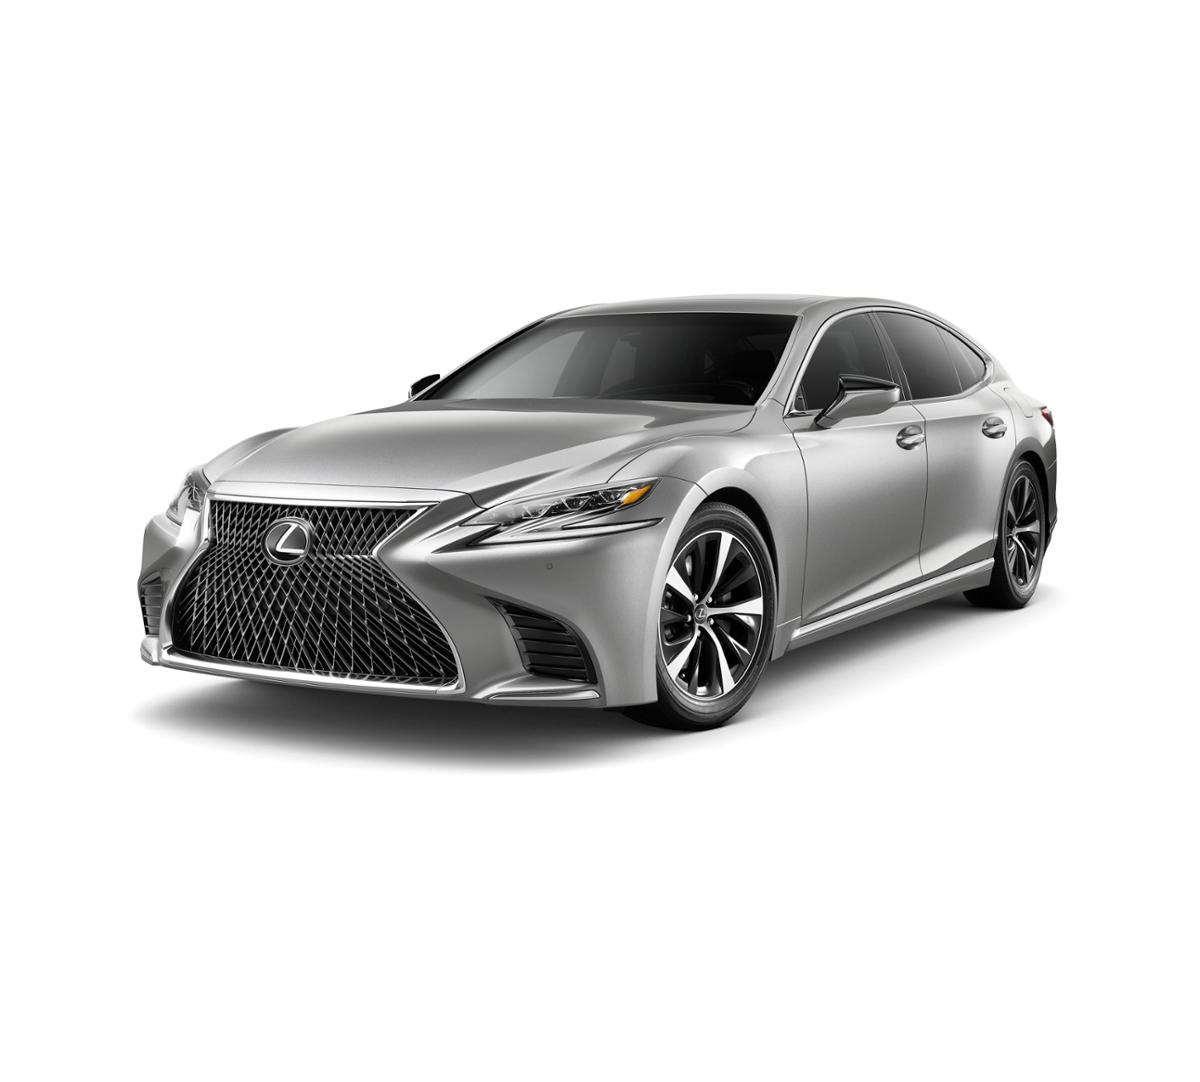 2019 Lexus LS 500 Vehicle Photo in Santa Monica, CA 90404